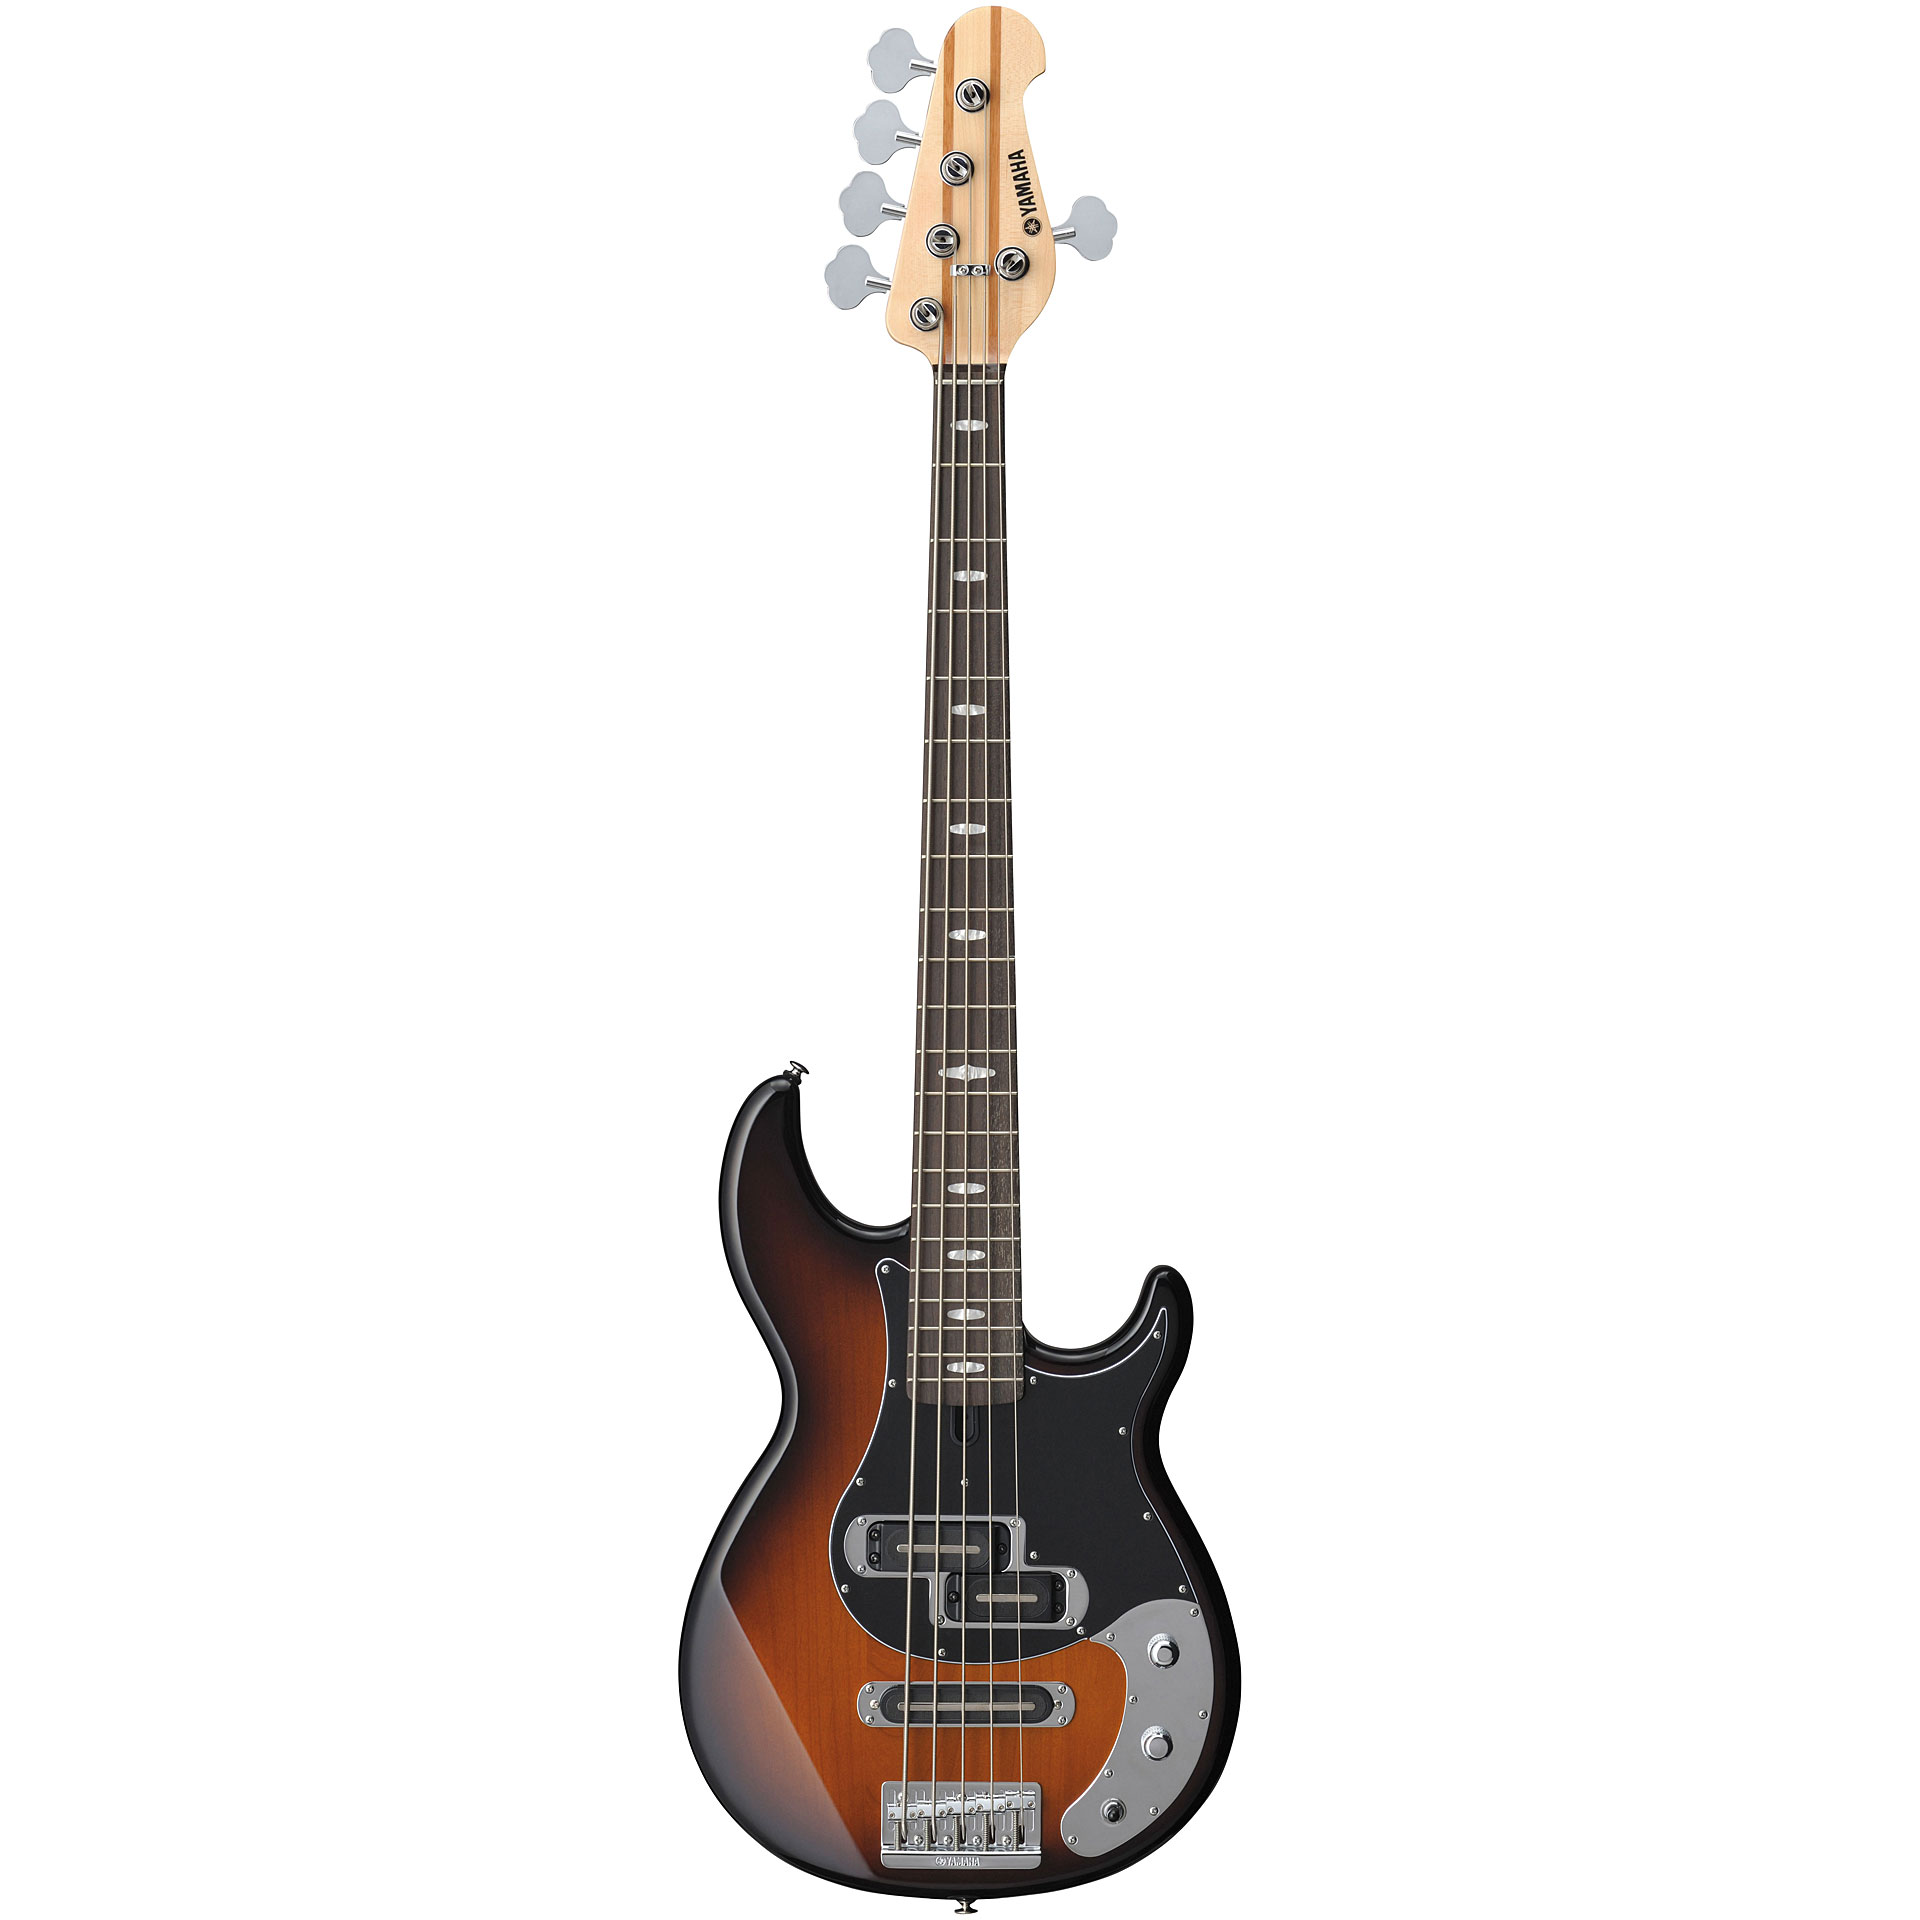 Yamaha Bass Mede In Indonesia